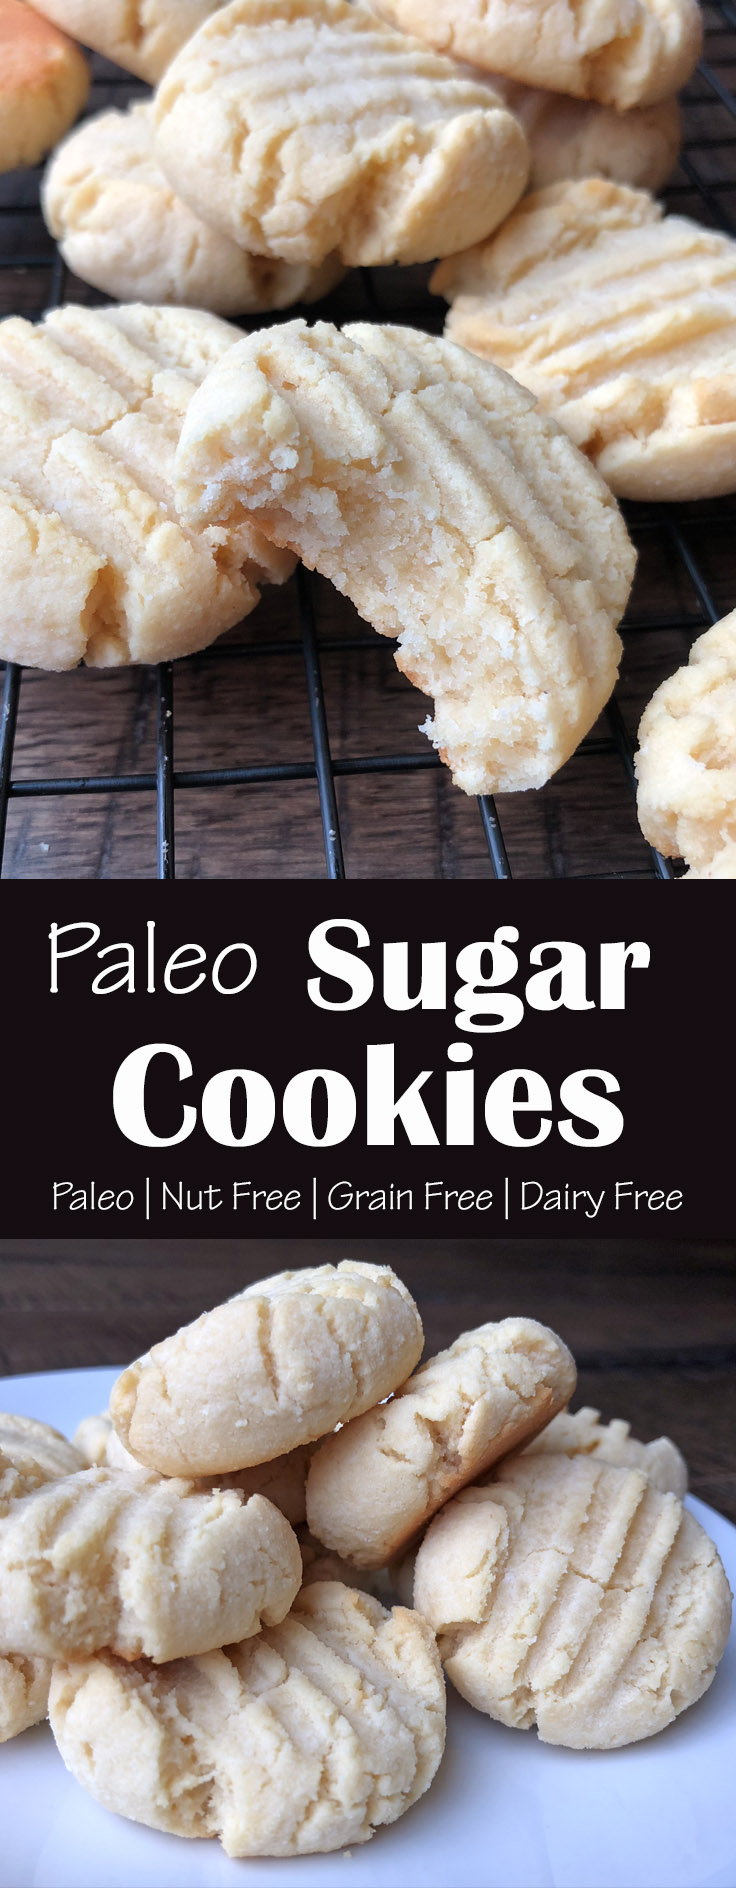 Nut Free Paleo Sugar Cookies with Collagen